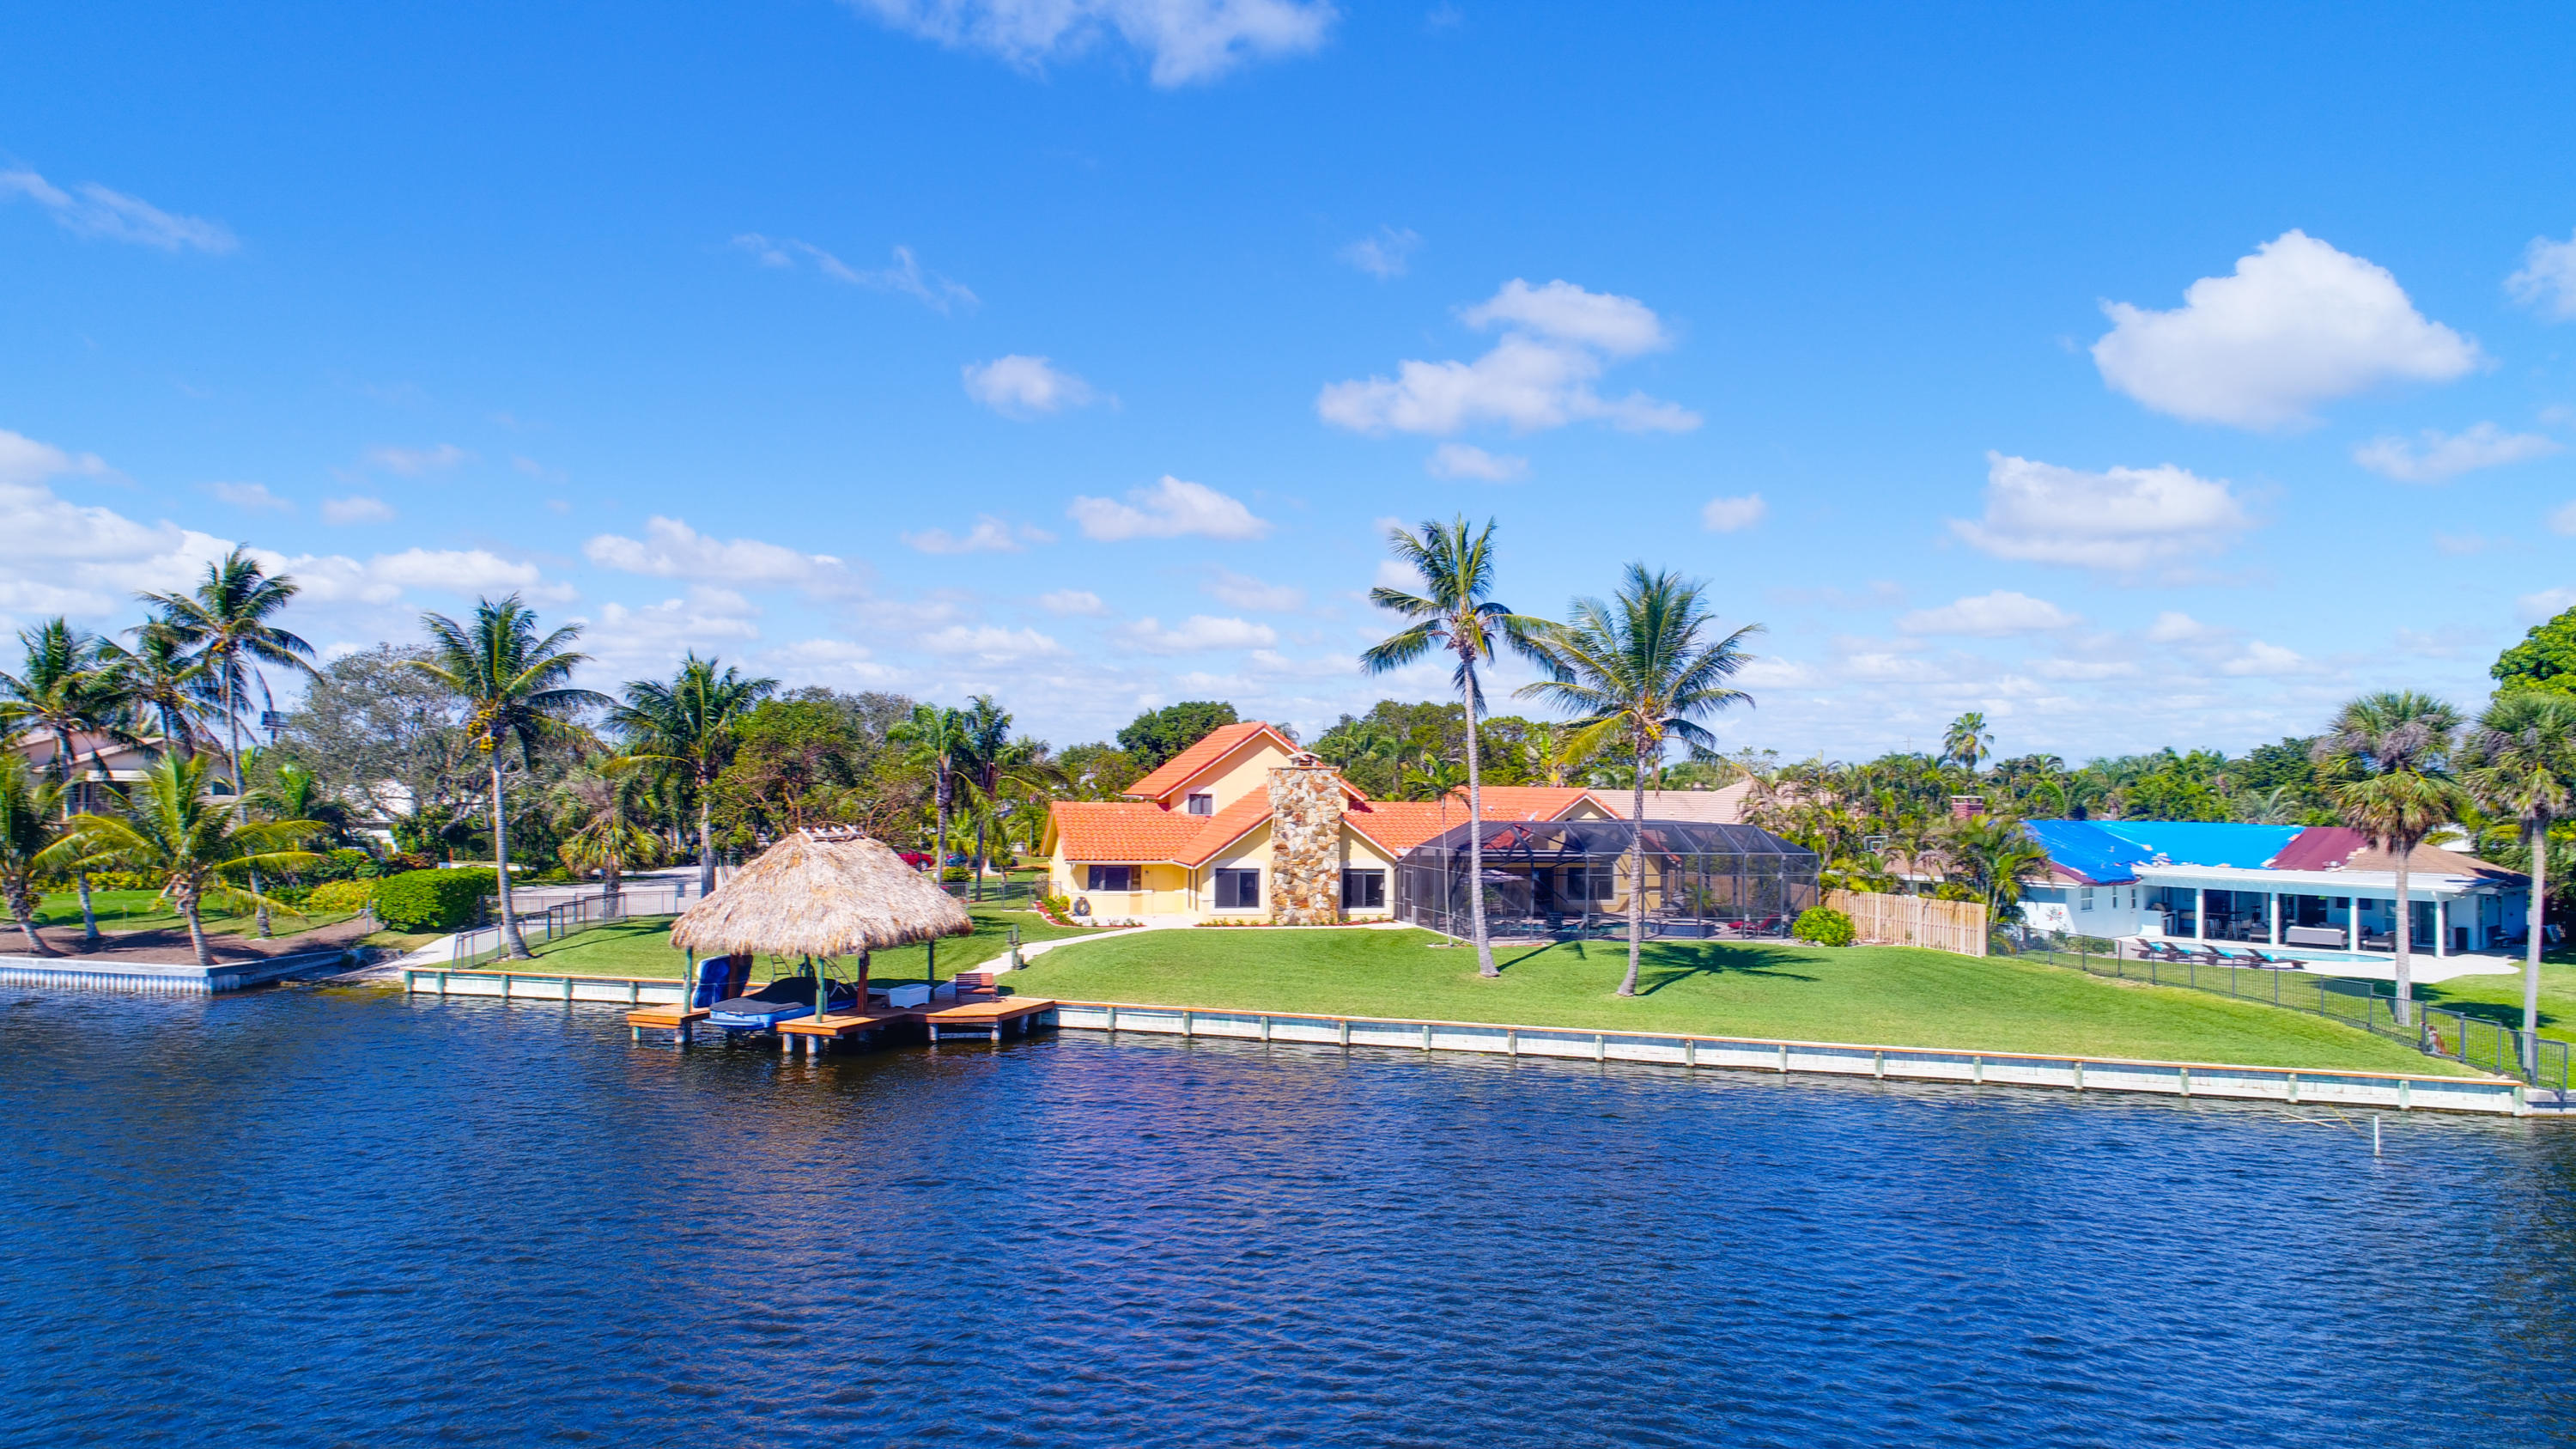 907 SW 38th Court, one of homes for sale in Boynton Beach